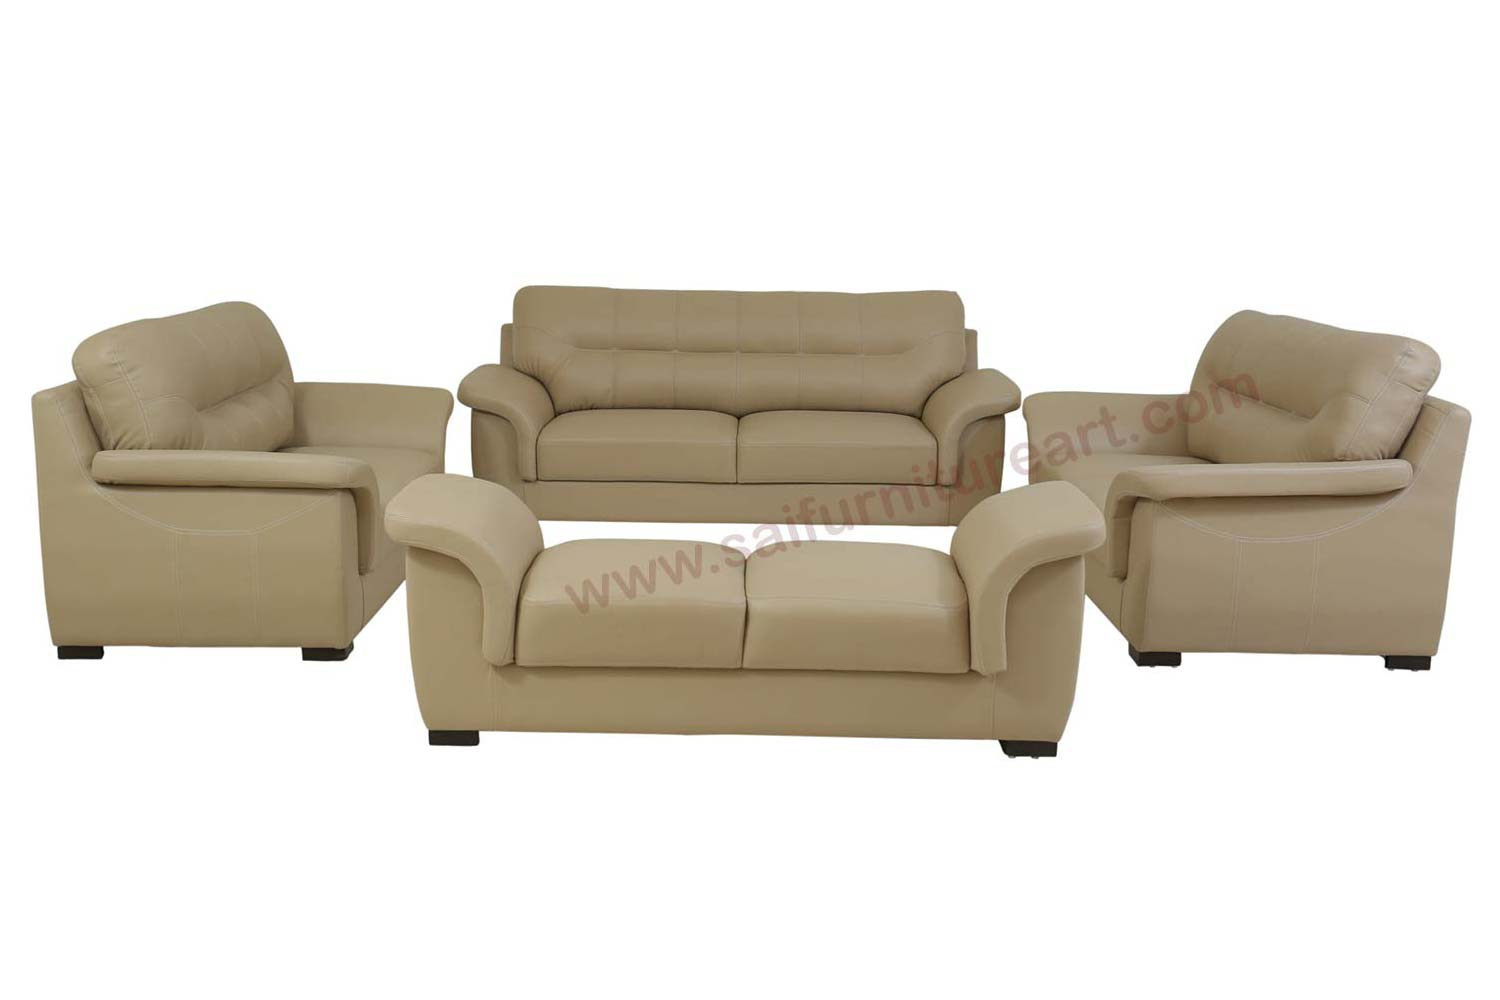 Recliner Sofa Kirti Nagar Buy Aldo Sofa Set Online Store Kirti Nagar Aldo Sofa Set Suppliers